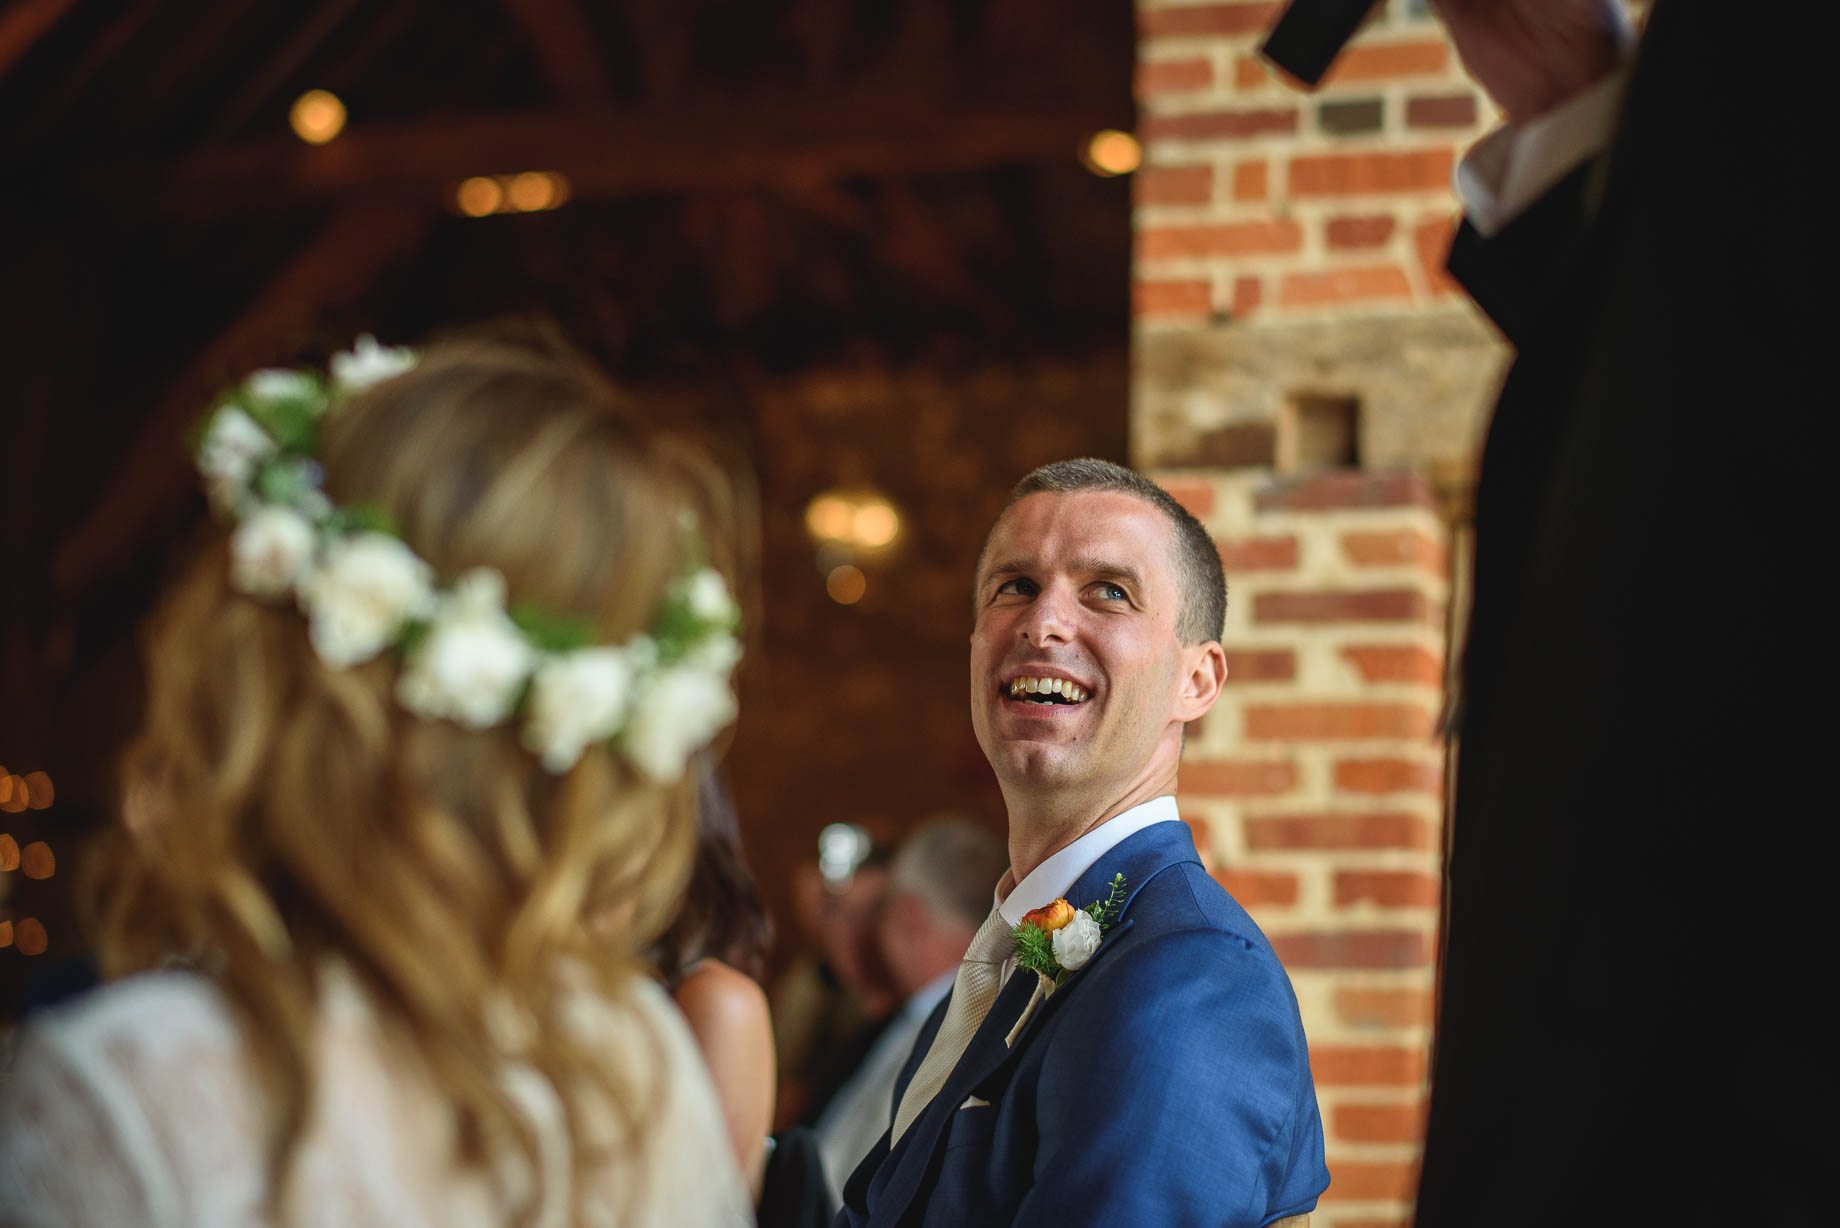 Bury Court Barn wedding photography by Guy Collier - Jo and Jamie (111 of 160)